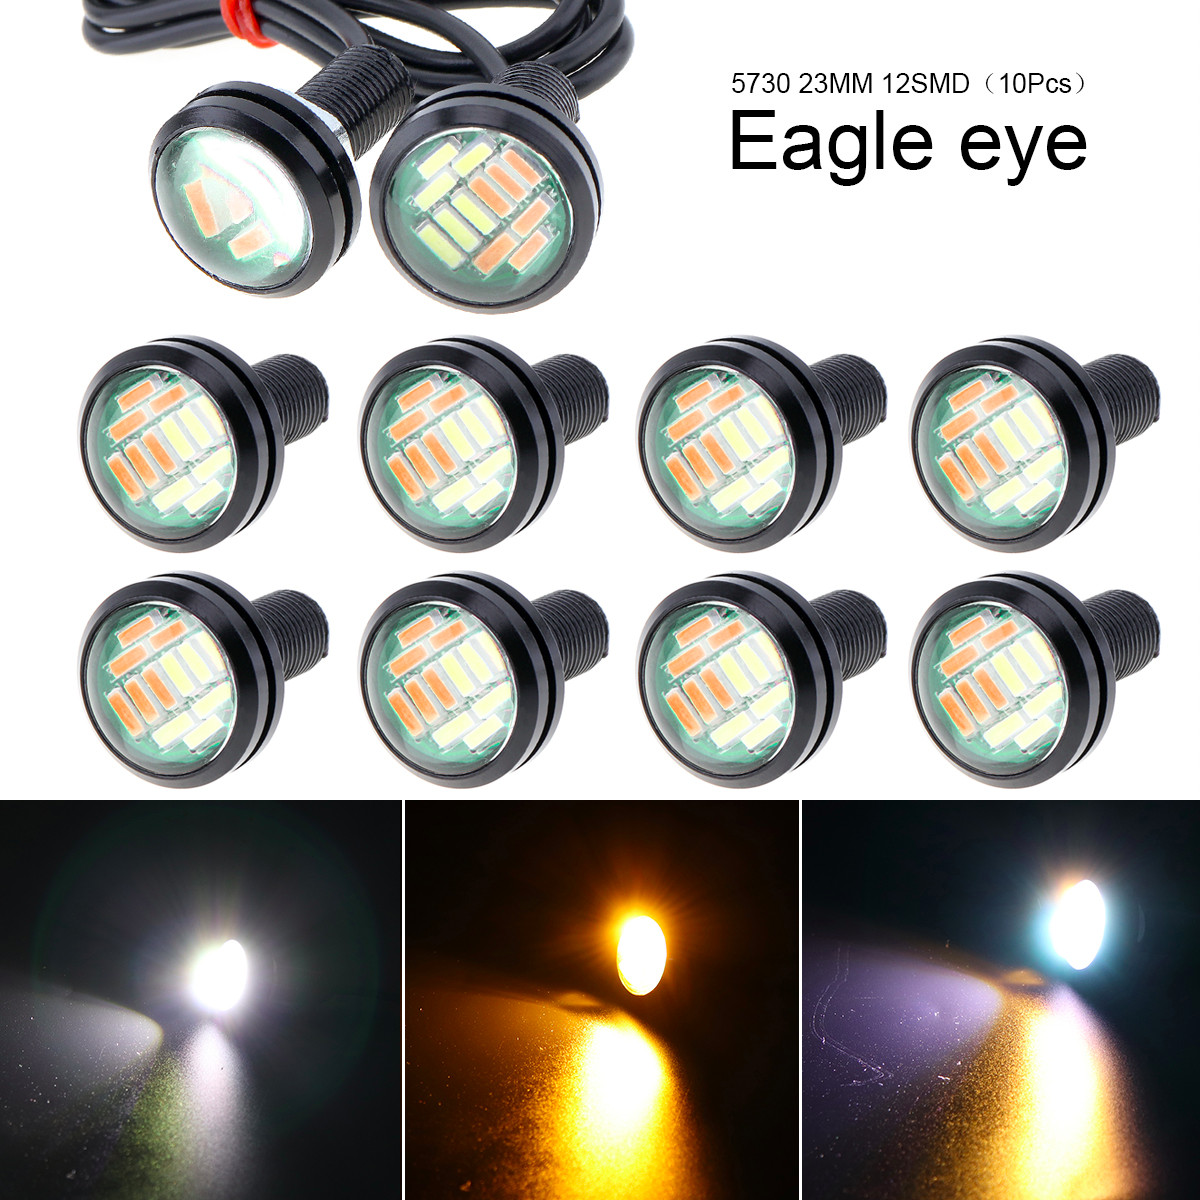 10pcs Waterproof 18mm 9w Cob White Led Eagle Eye Car Fog Drl Turn Signal Light Be Friendly In Use Electric Vehicle Parts